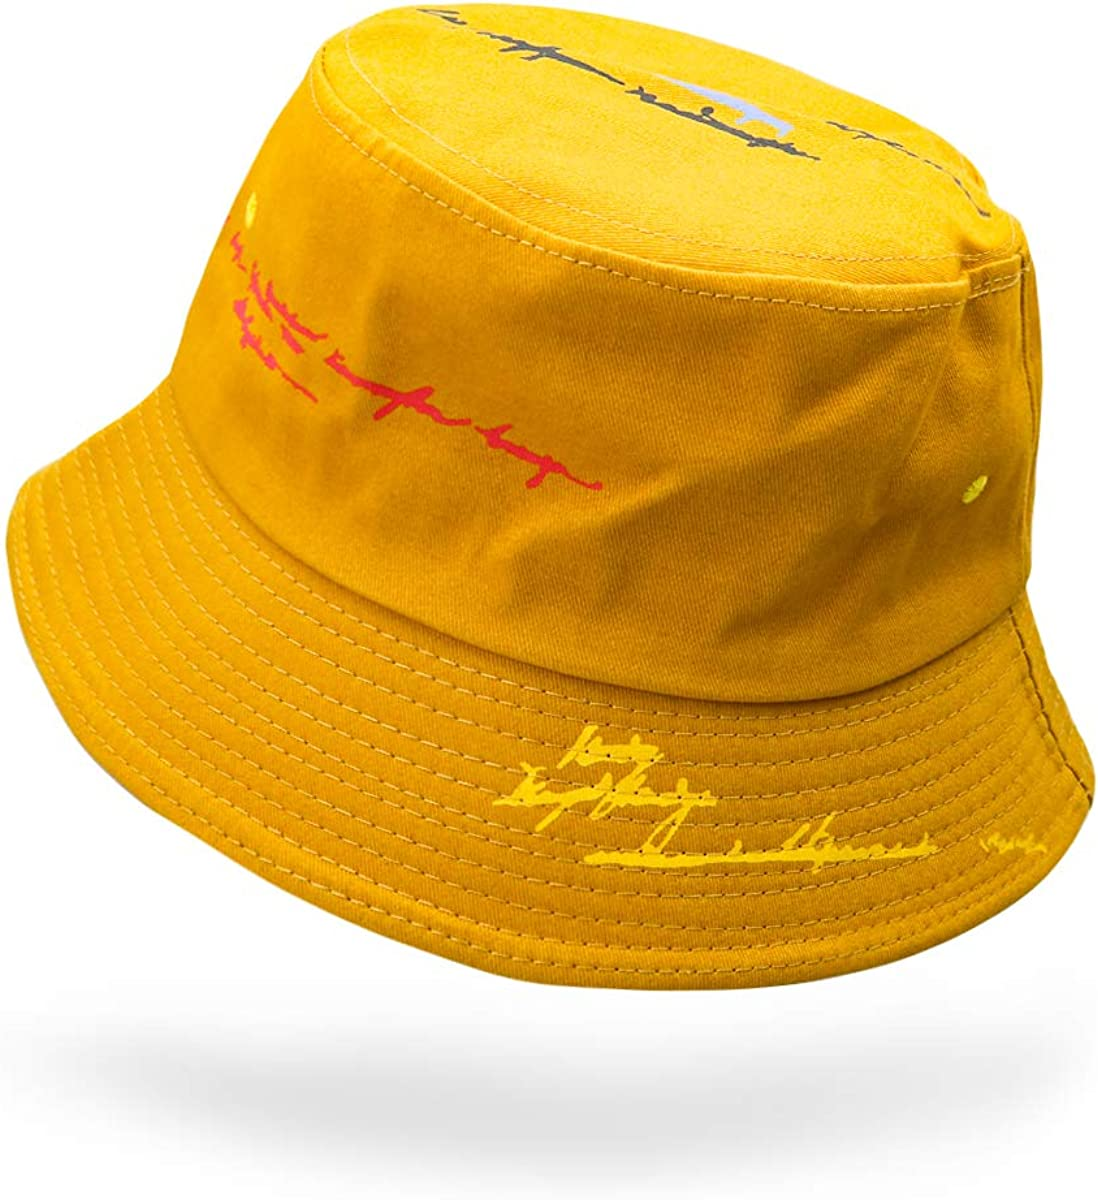 GSUNG Bucket Hat,Unisex 100/% Cotton Packable/Summer Caps Youth hat Size Free Summer Travel Bucket Hat